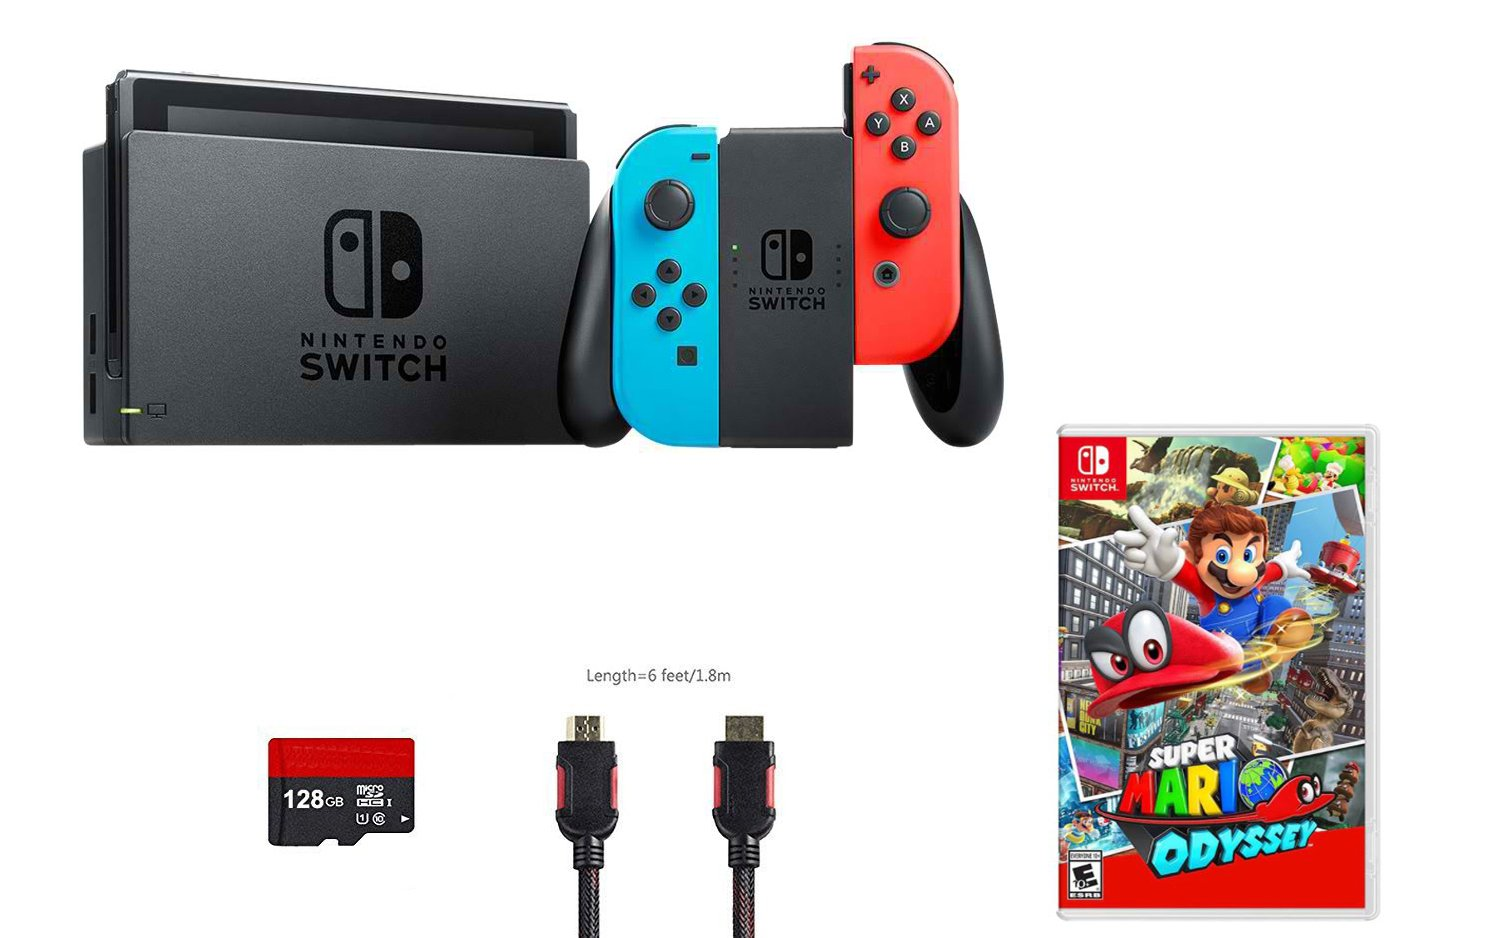 Nintendo Switch 4 items Bundle:Nintendo Switch 32GB Console Neon Red and Blue Joy-con,128 GB Micro SD Card,Super Mario Odyssey, and HDMI Cable